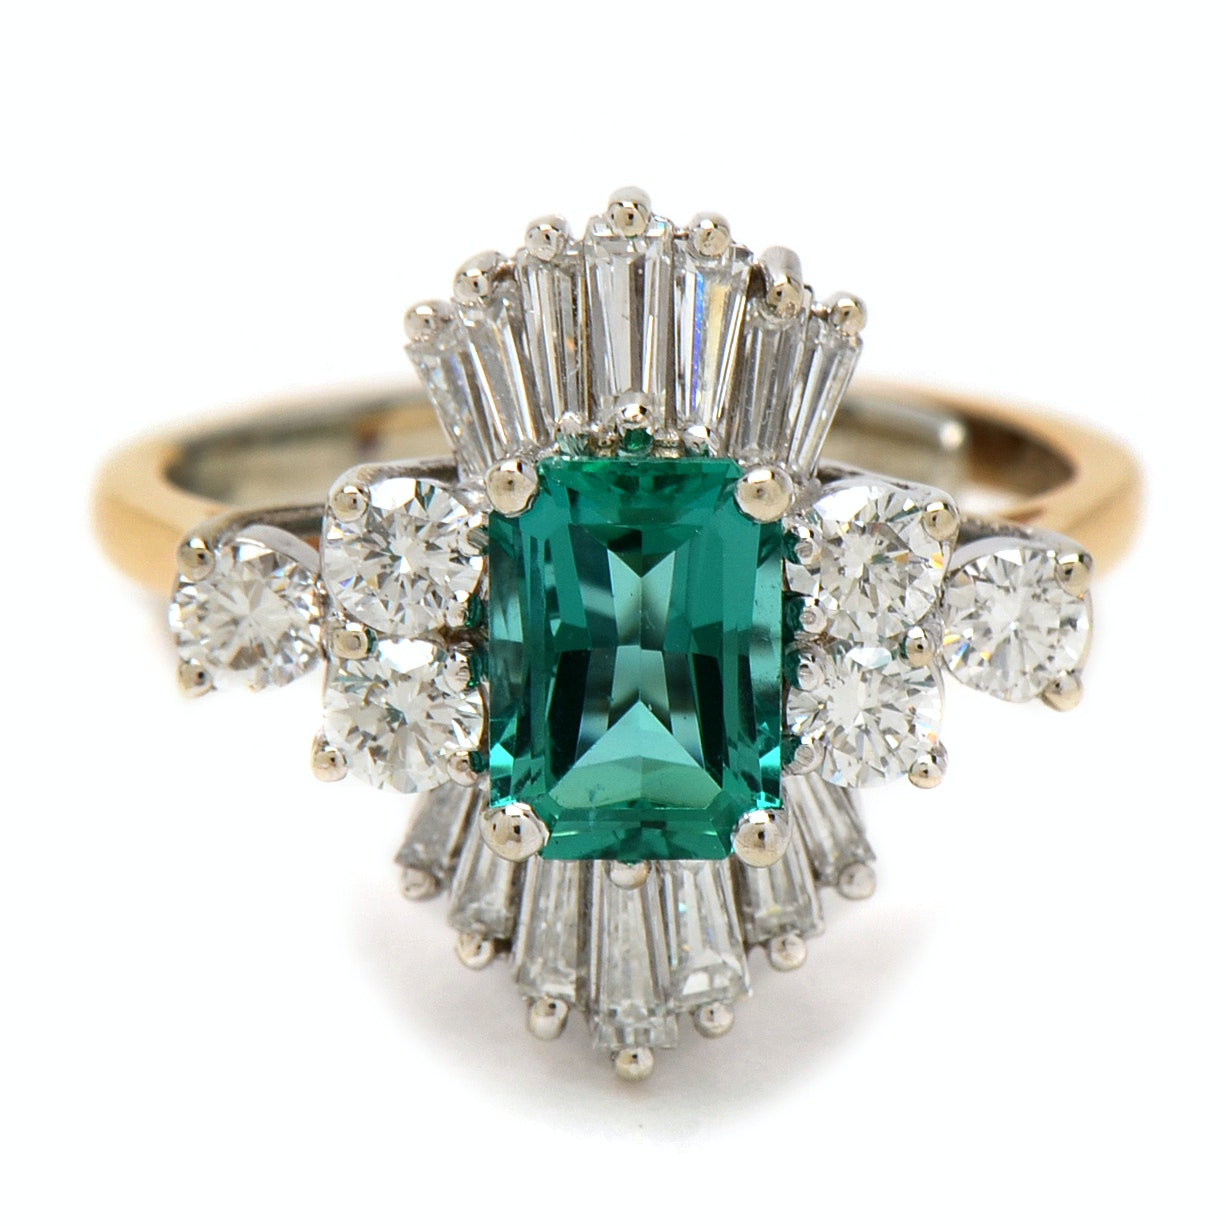 14K Yellow Gold 1.48 Carat Emerald and Diamond Cocktail Ring